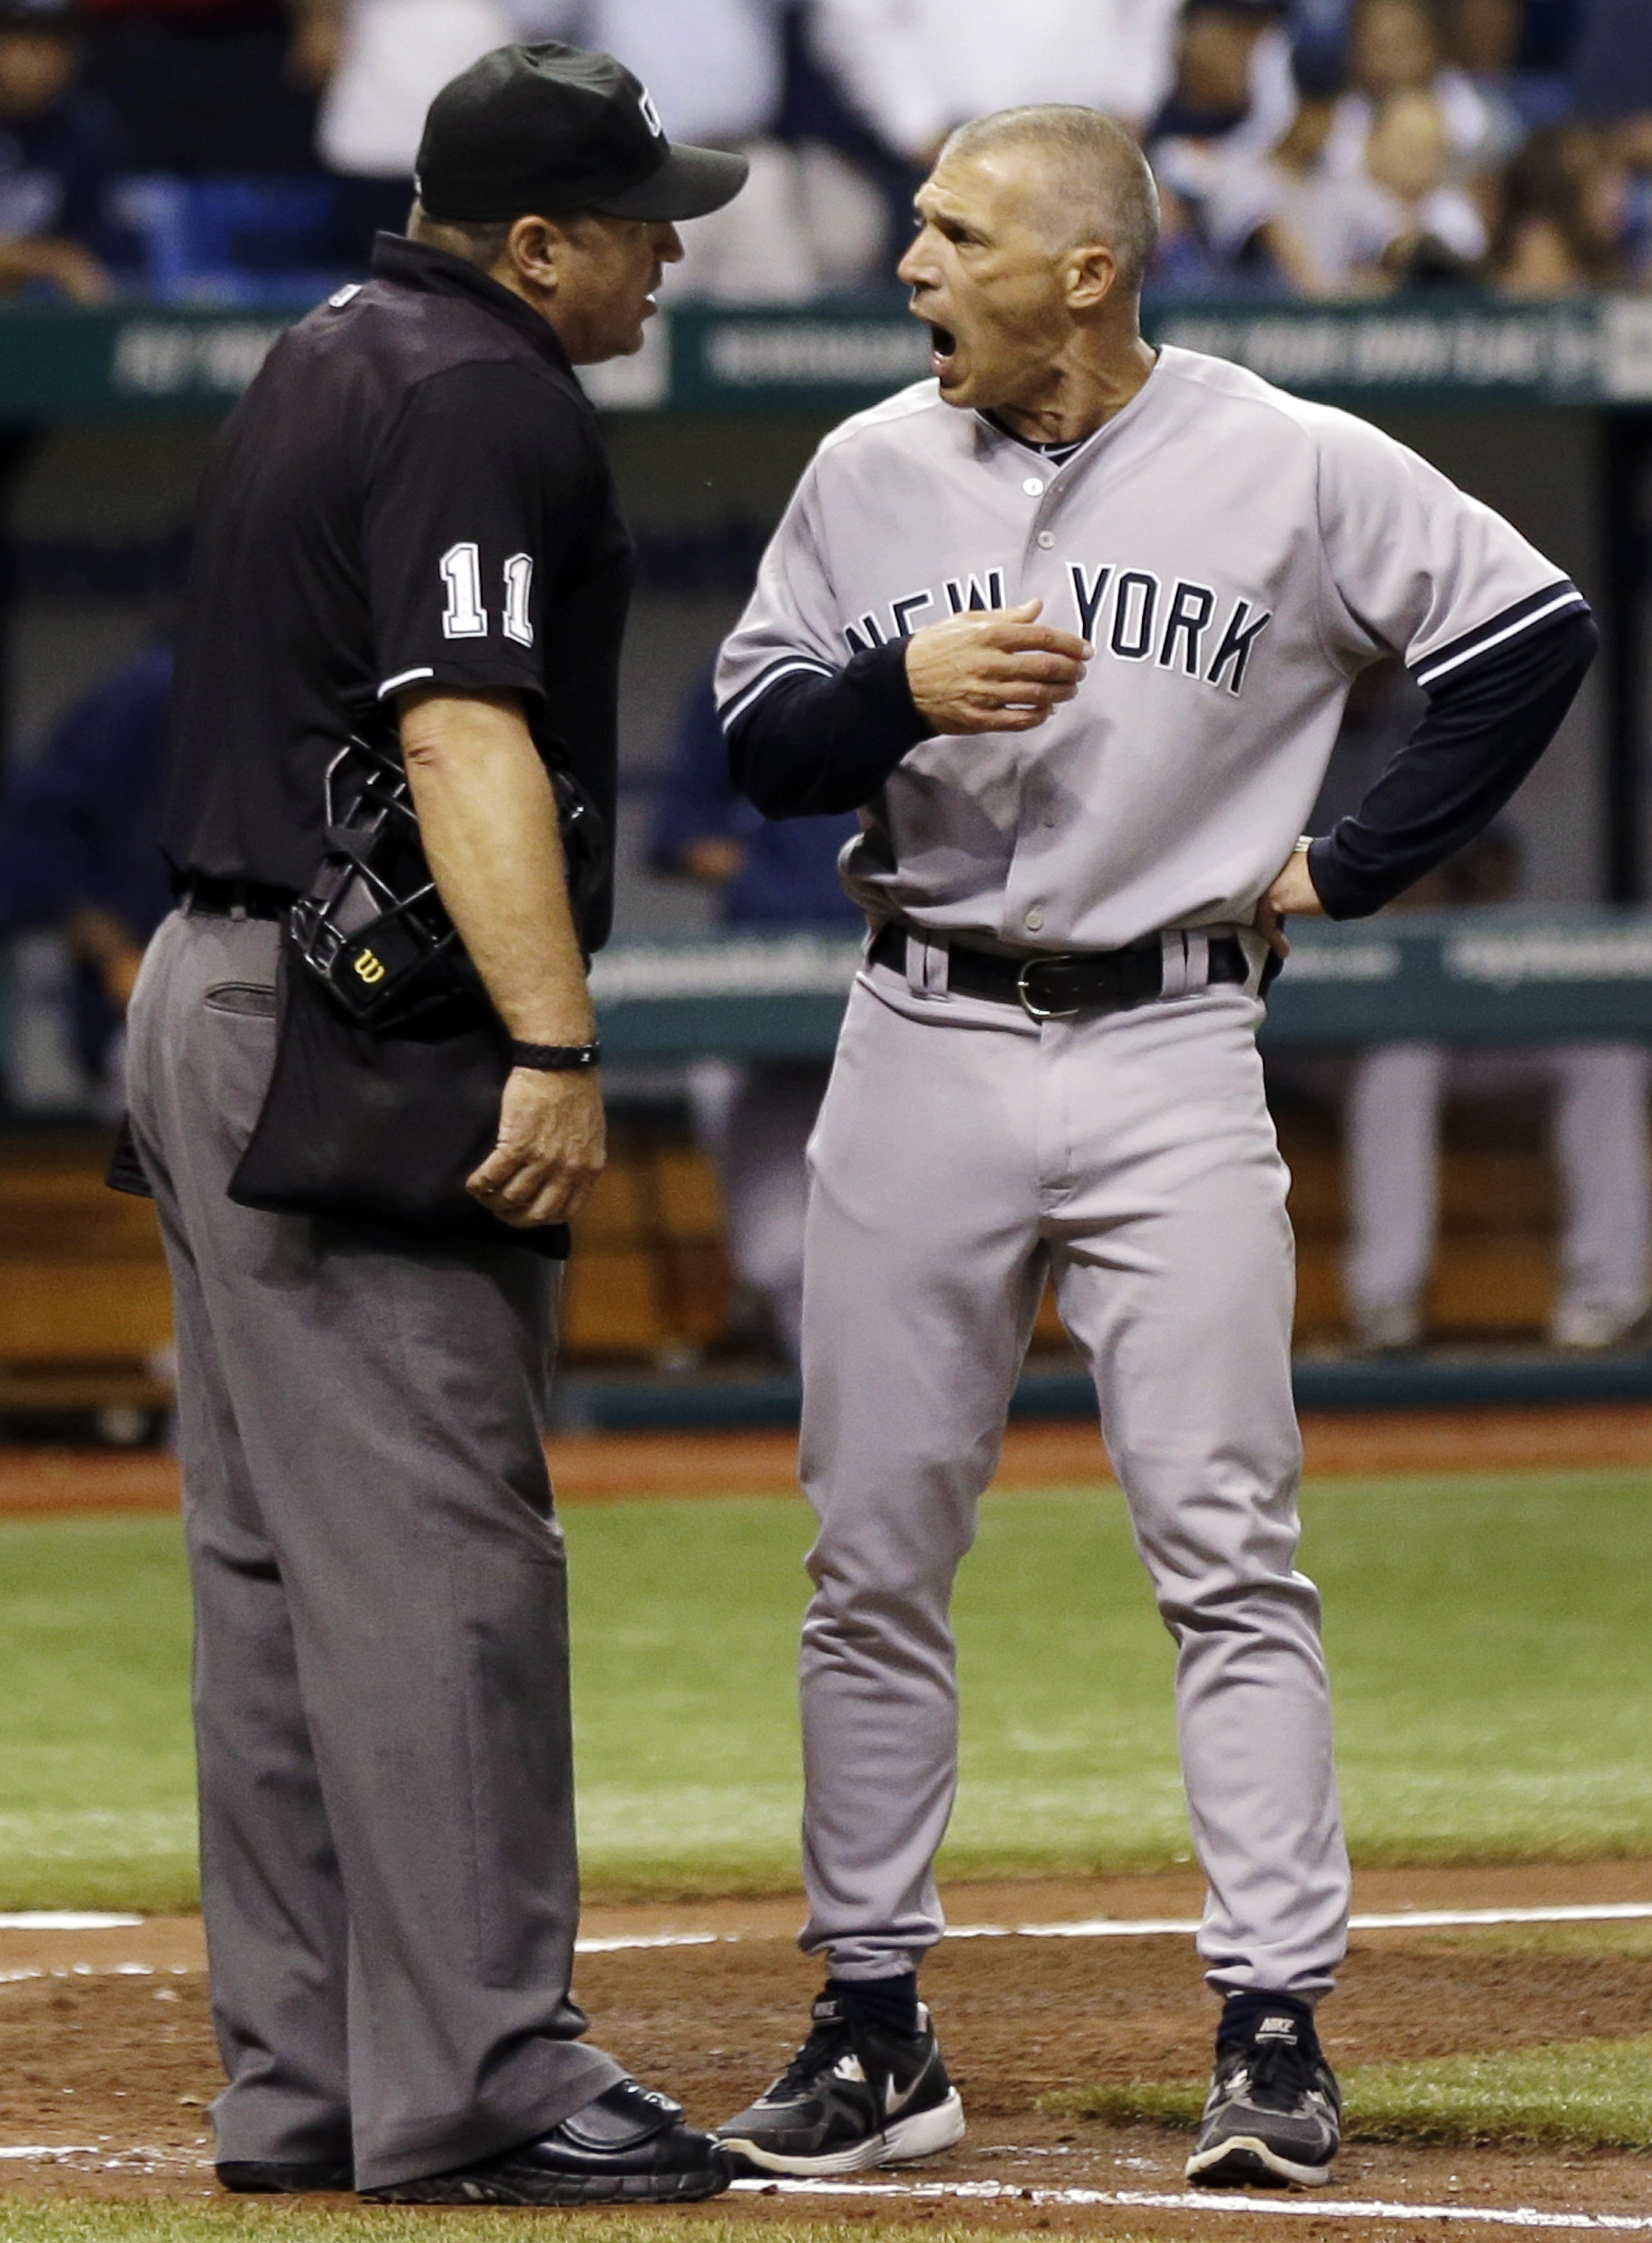 Joe Girardi isn't arguing with only umpires. A columnist was the target of his most recent blowup. (AP)